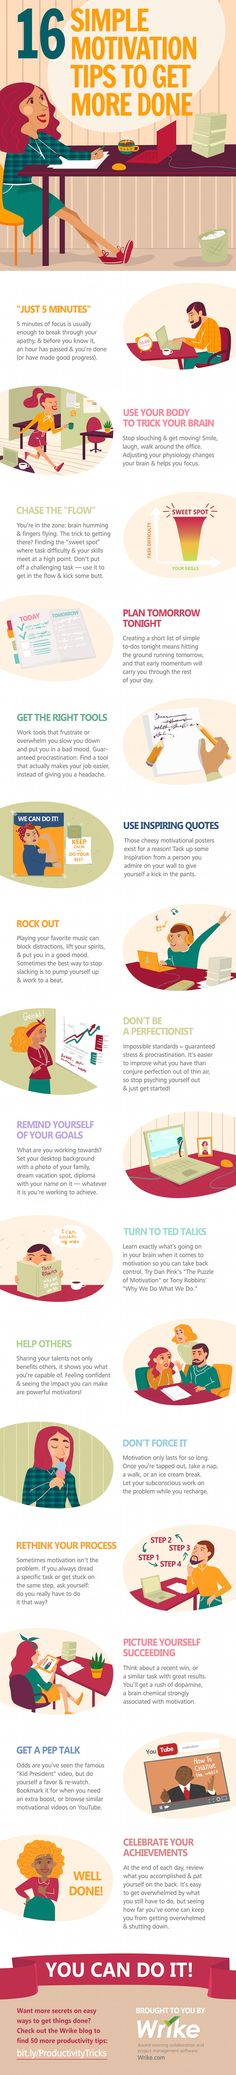 16 Simple Motivation Tips for Small business owners and managers to Get More Done (Infographic)